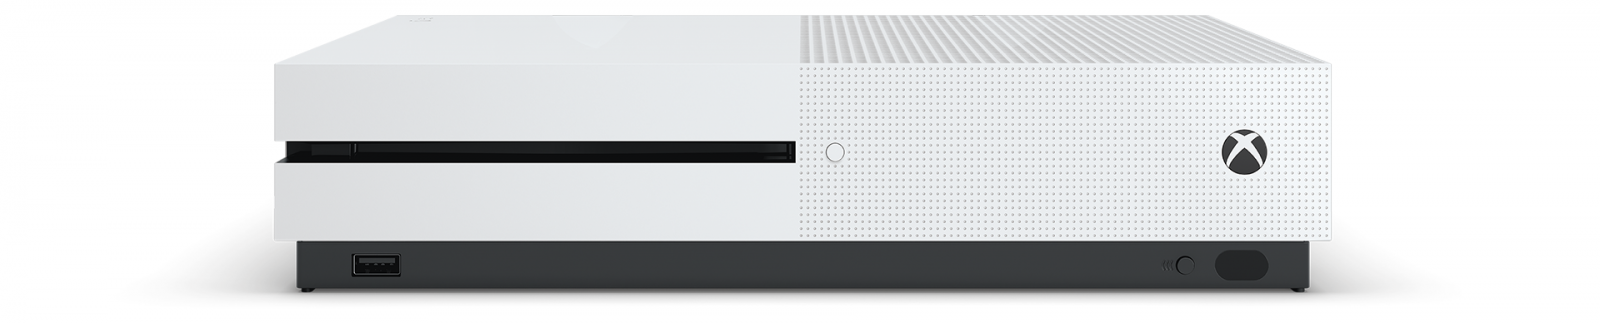 Xbox One S 500GB + FIFA 17 image1